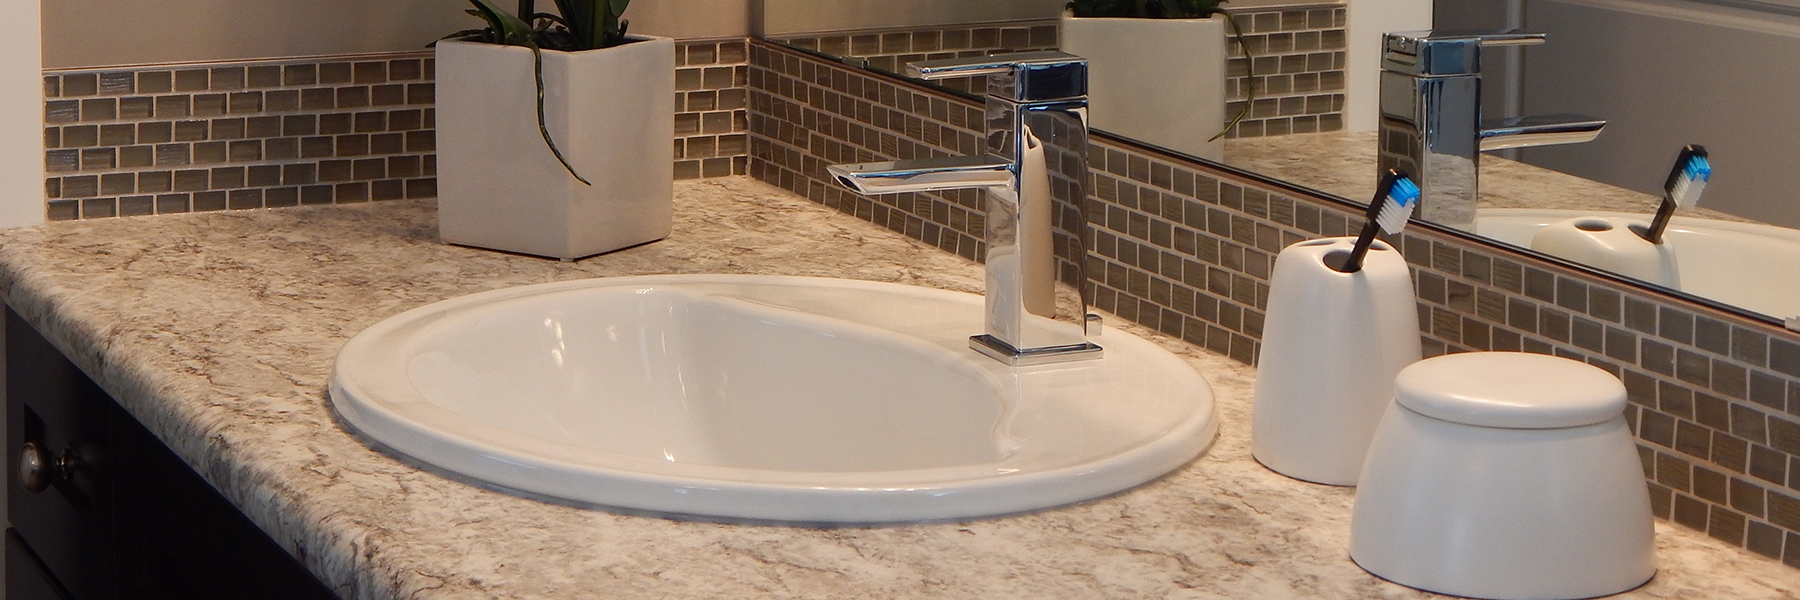 sink repair installation boulder longmont